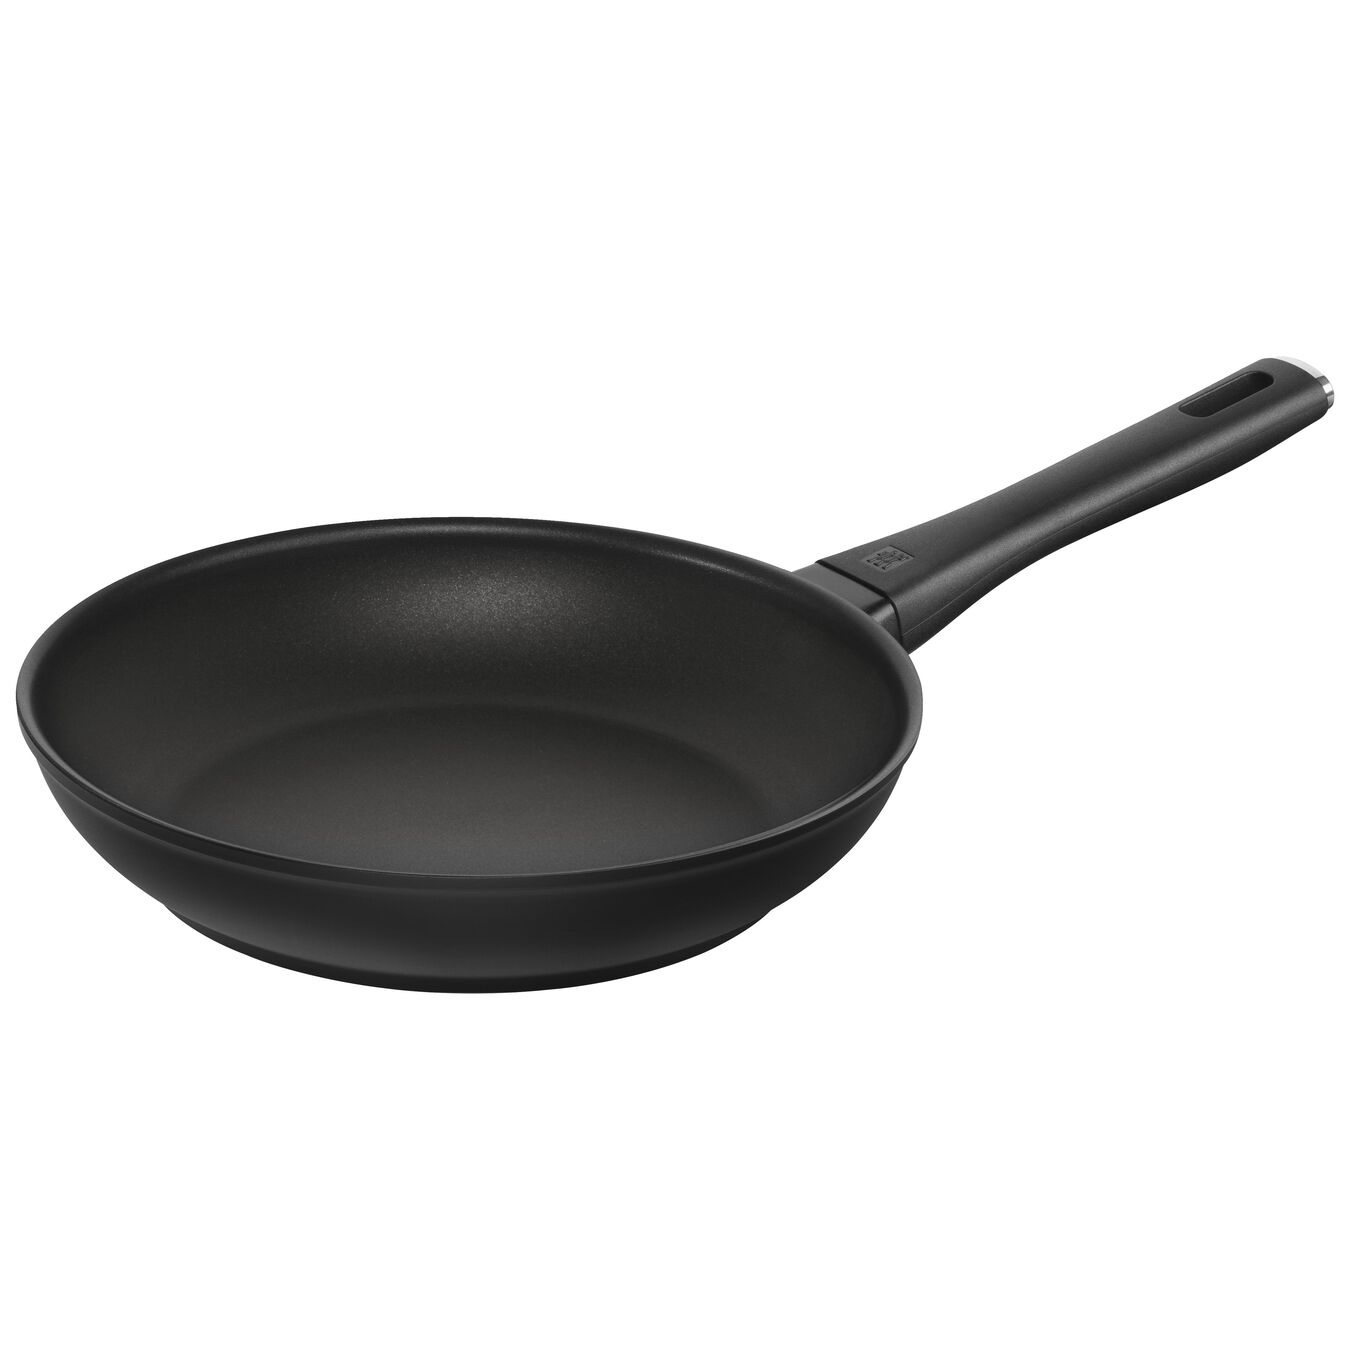 9.5-inch Nonstick Fry Pan,,large 4